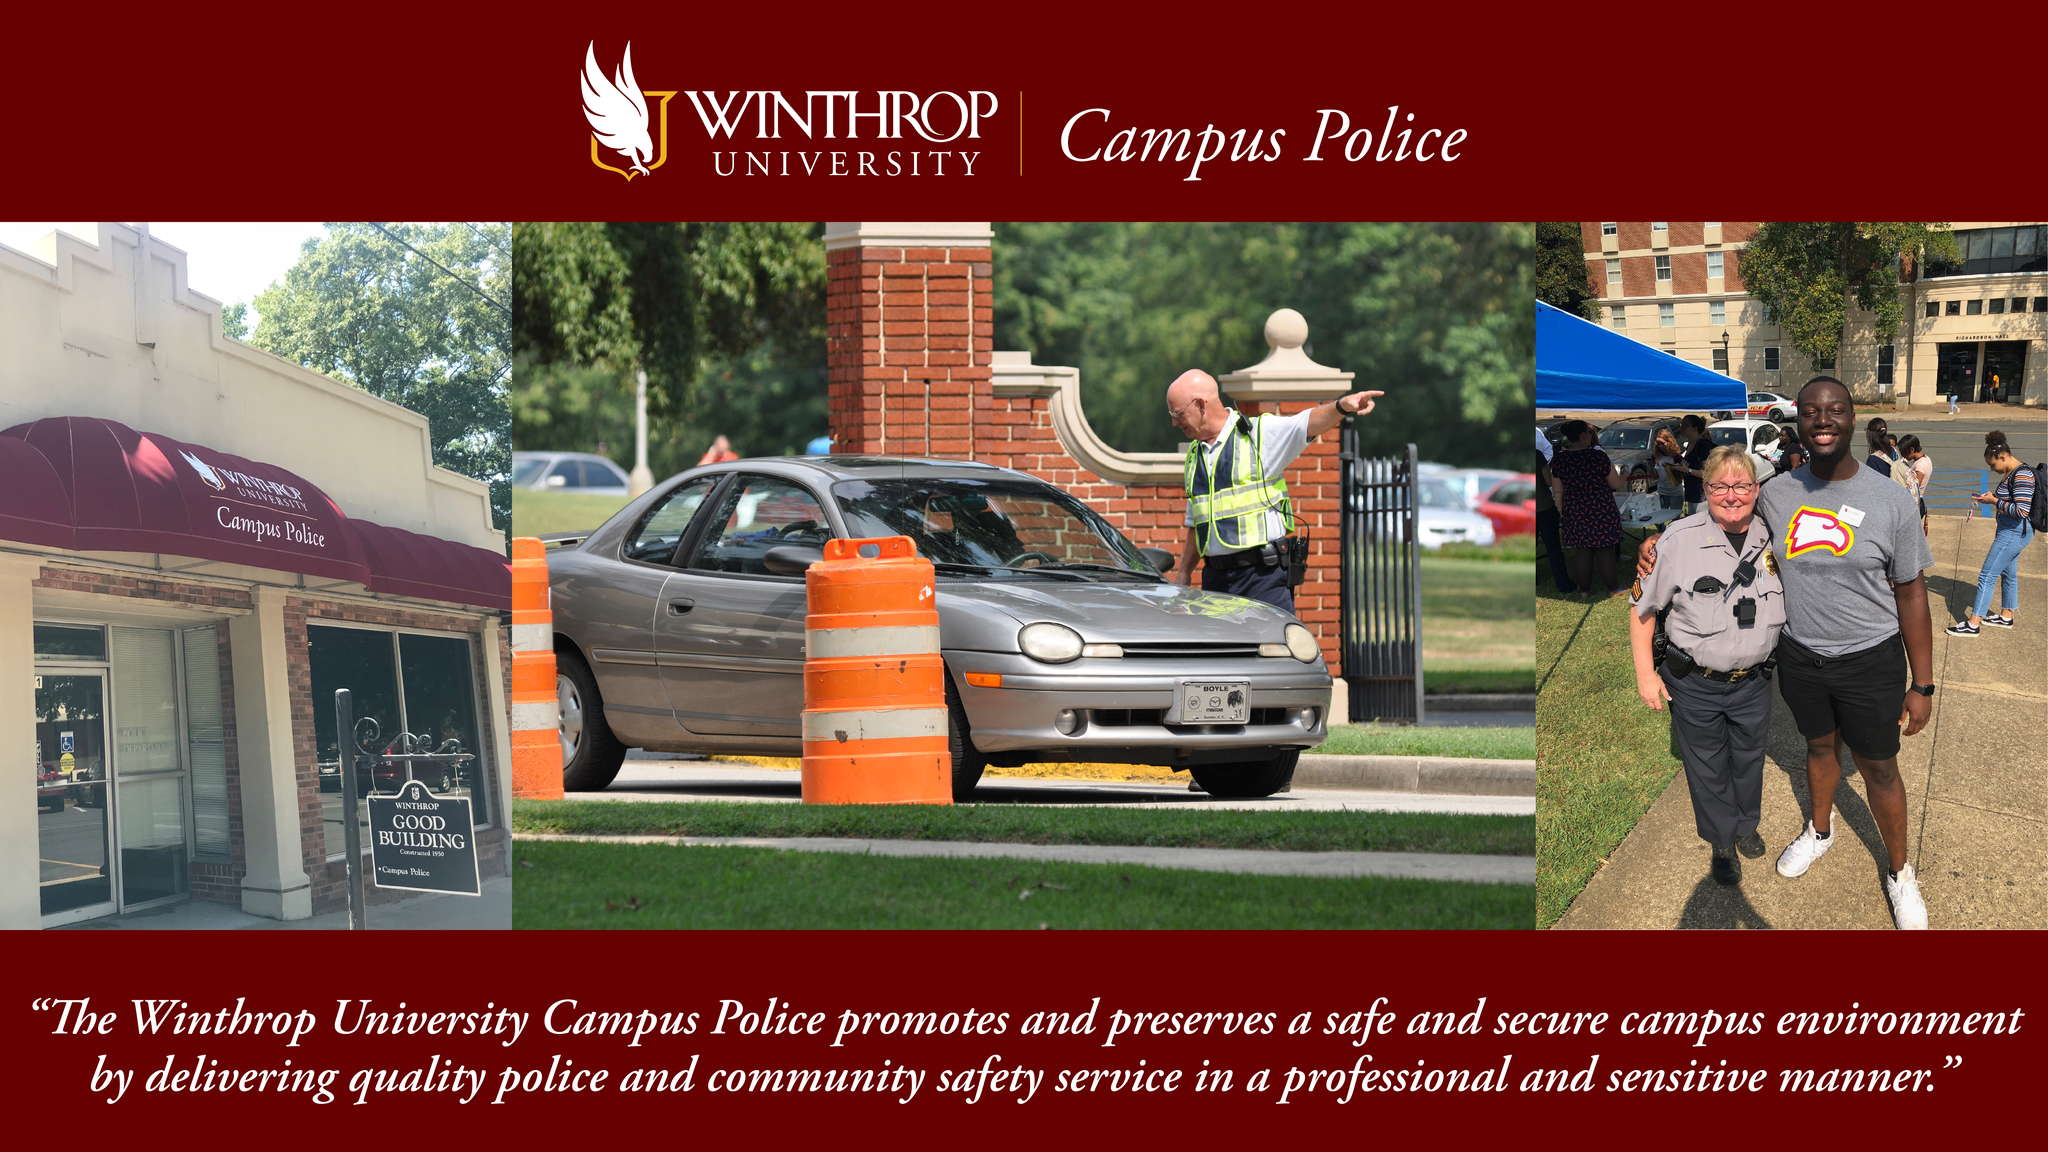 VWD_Pictures_Winthrop_Police